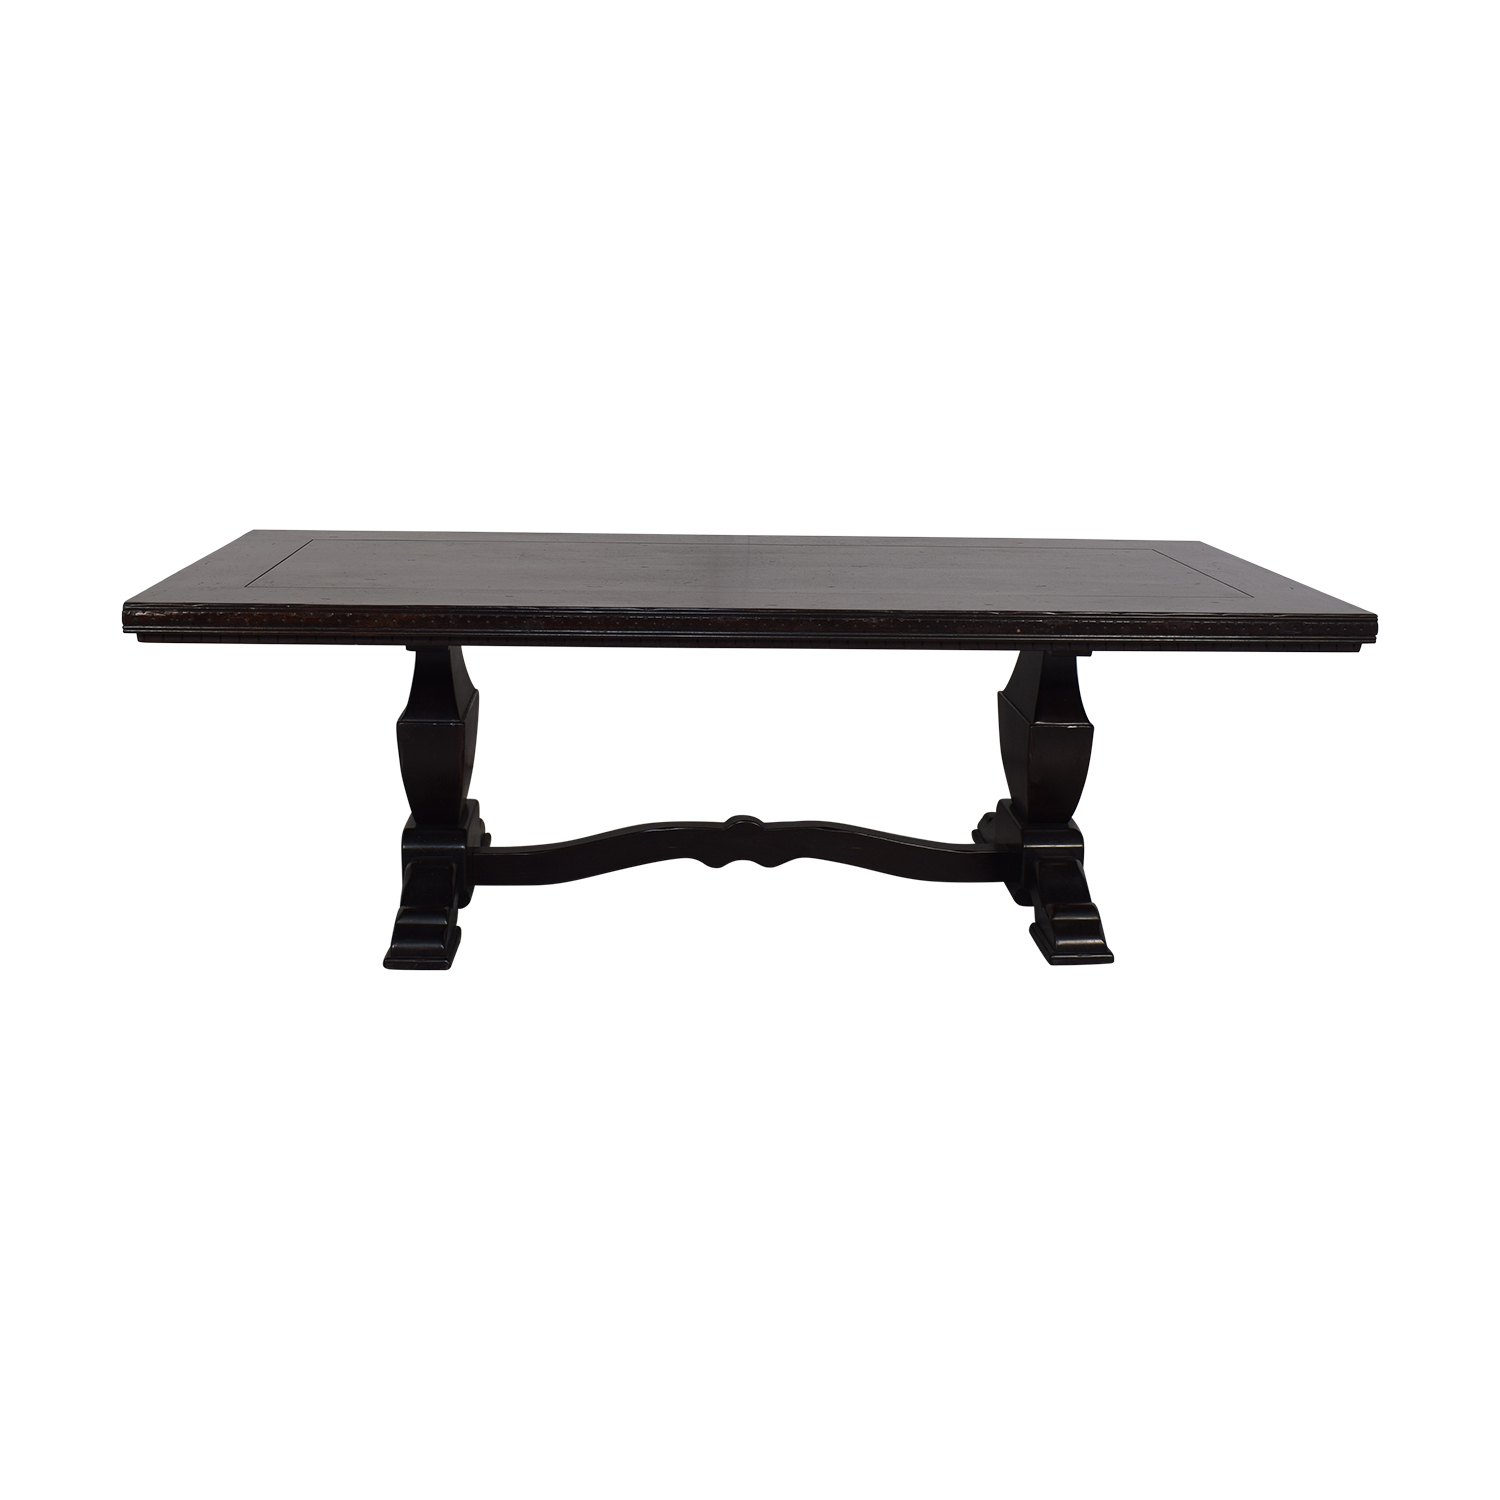 South Cone Furniture Salvatore Dining Table / Tables